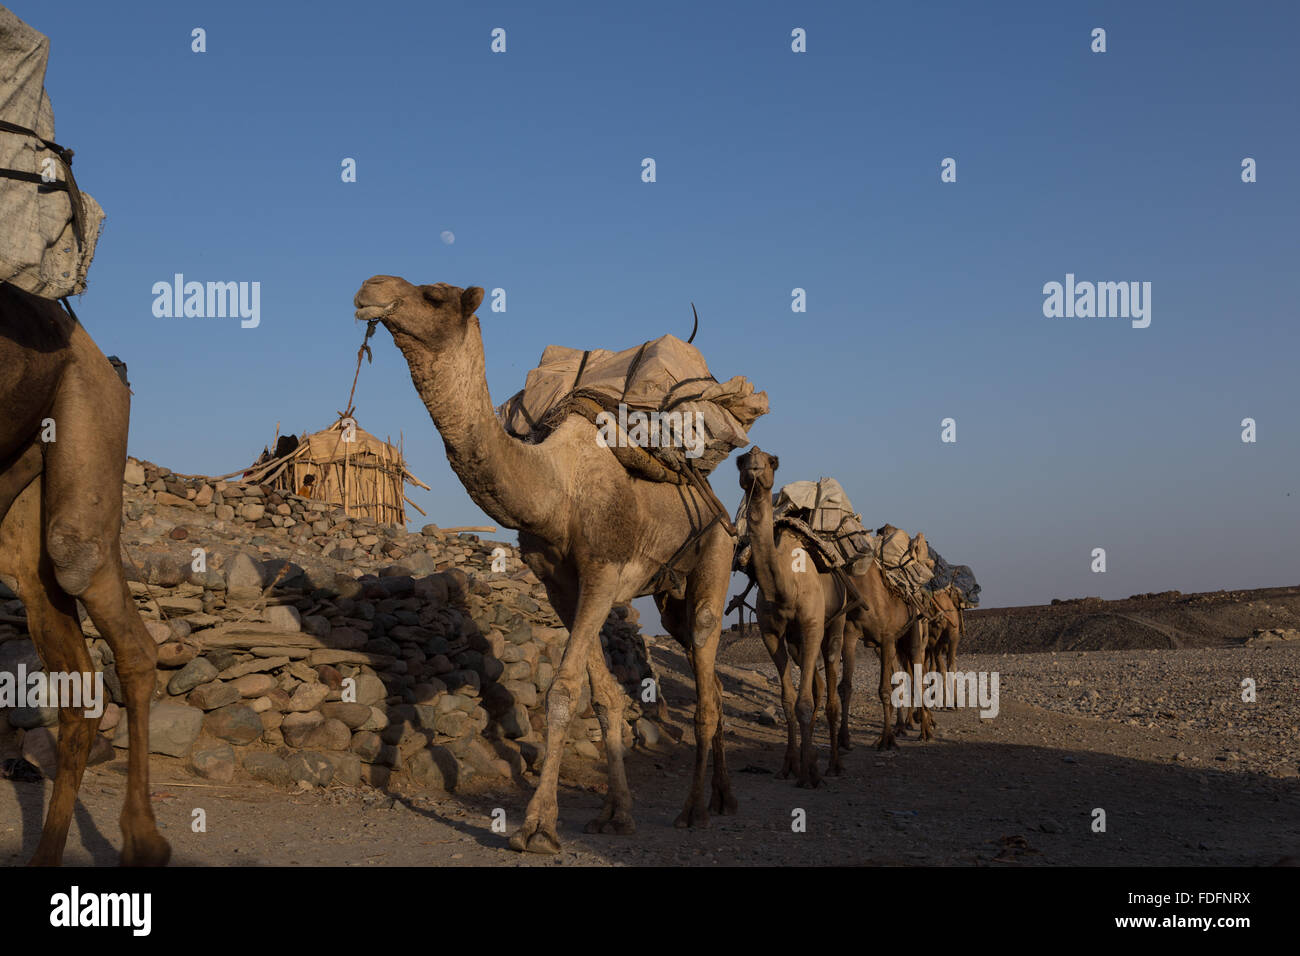 Camels carrying hand-cut tablets of salt arrive in Hamedila from the nearby salt pans as they have done for hundreds - Stock Image